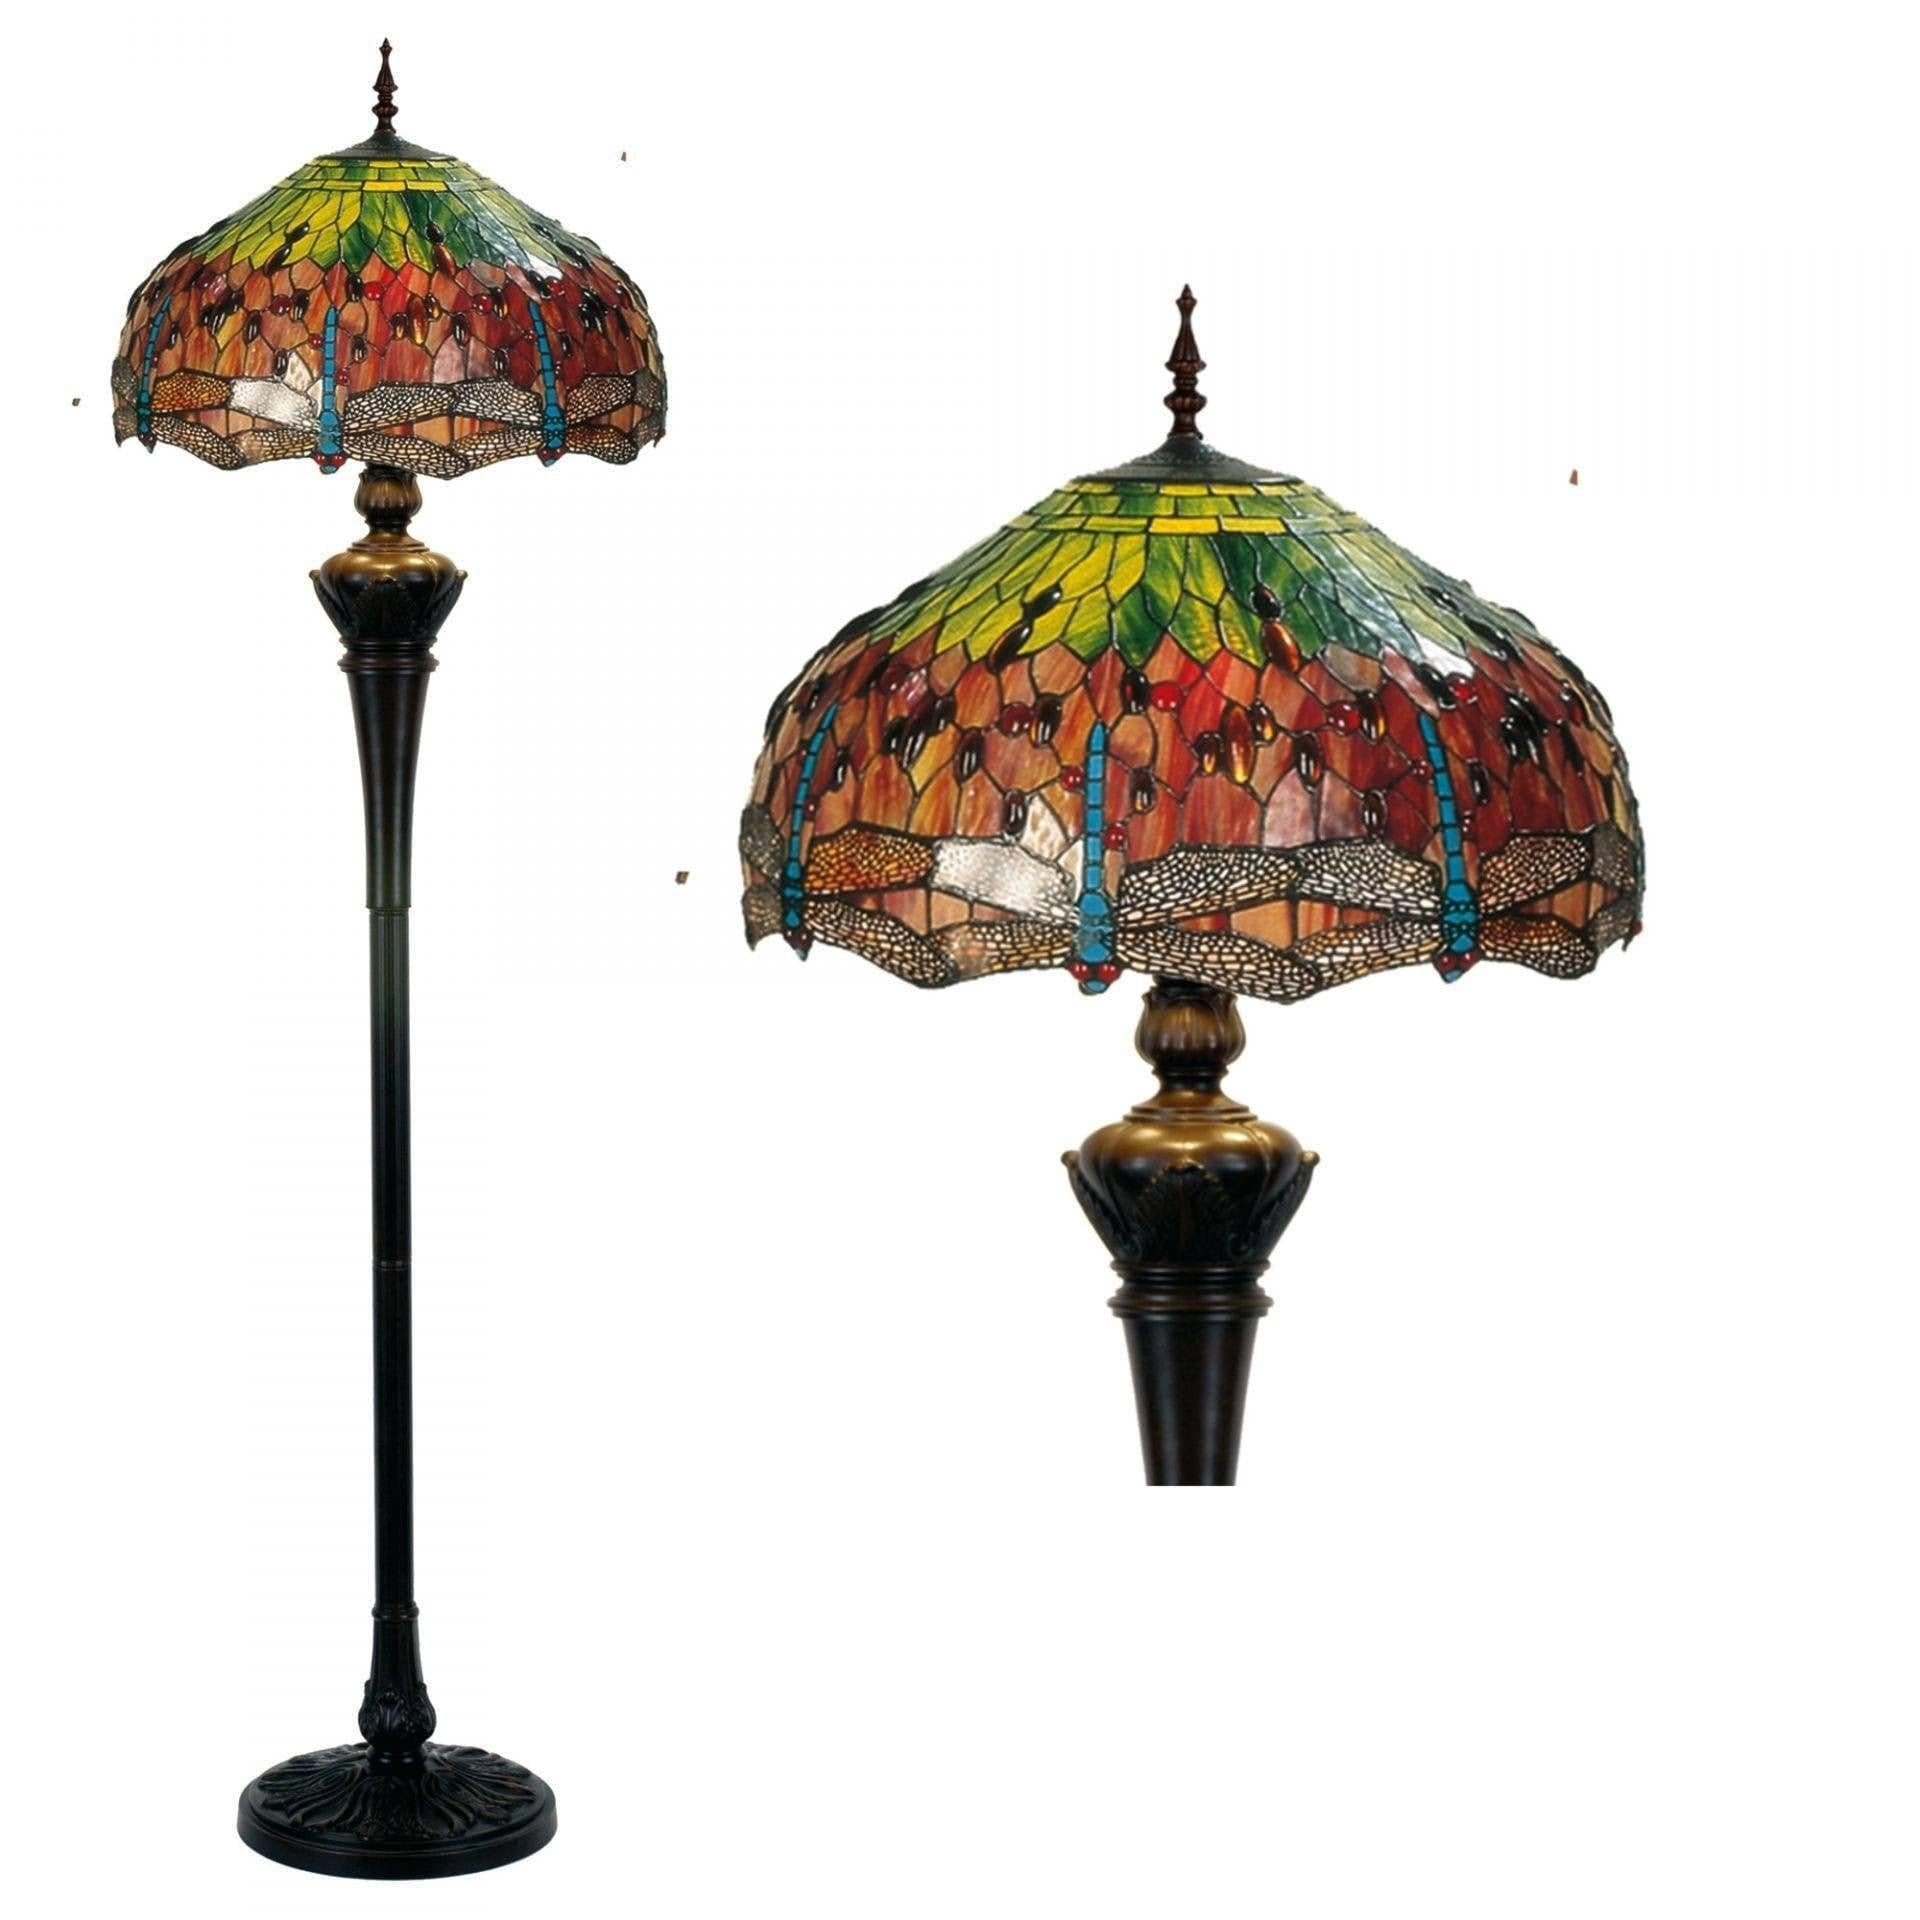 Tiffany floor lamps flame dragonfly standard lamp 1 tiffany floor lamps flame dragonfly tiffany floor lamp mozeypictures Images